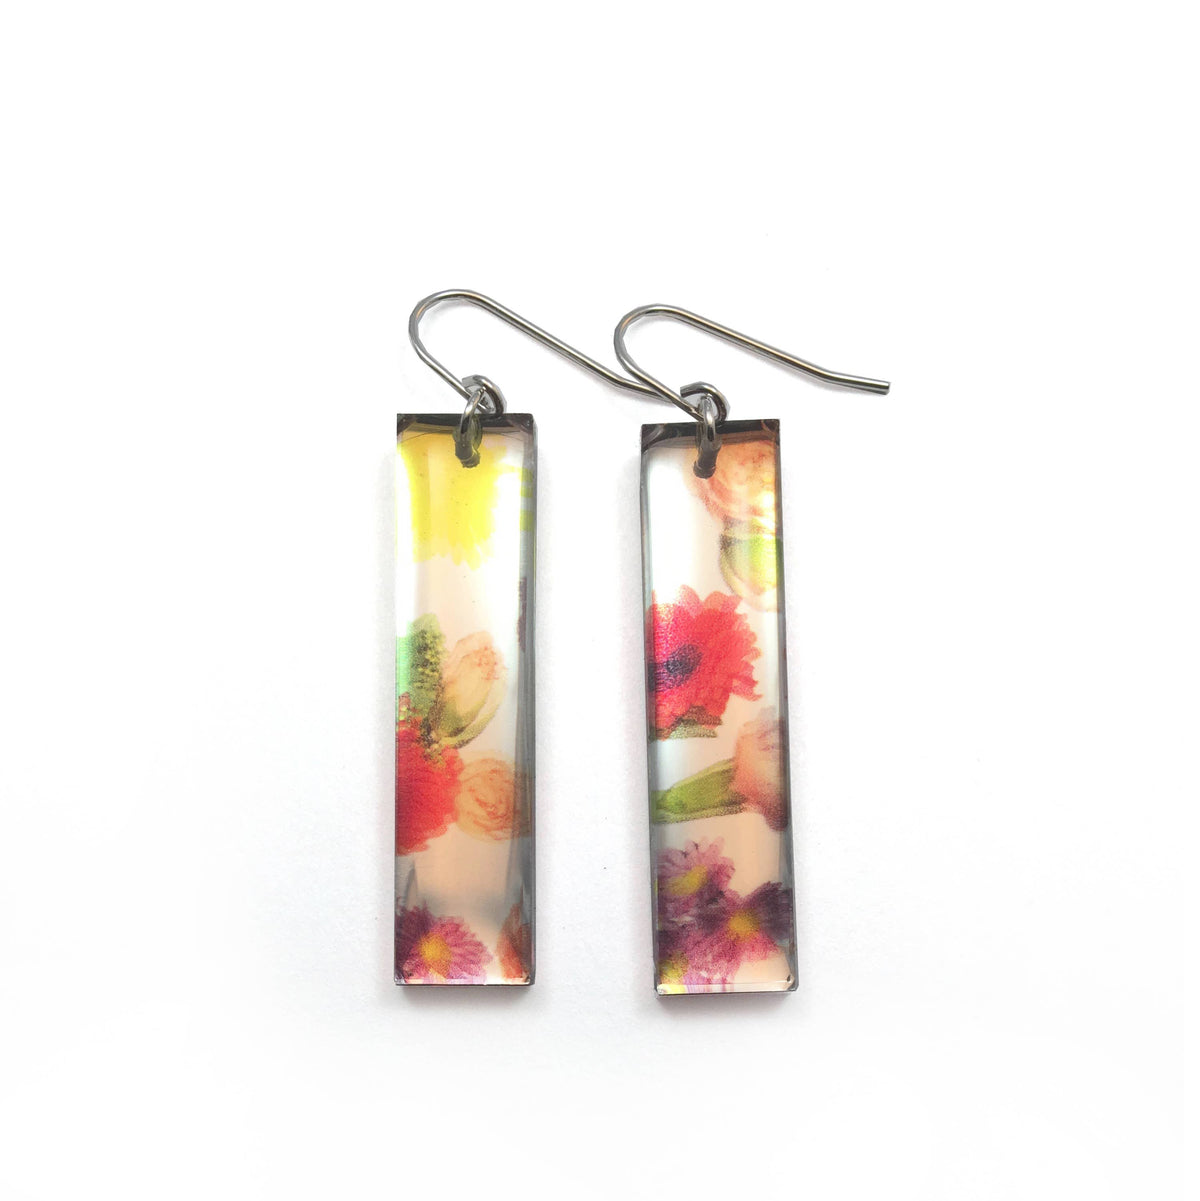 Black Drop Designs - Mirror Tall Wallpaper Earrings